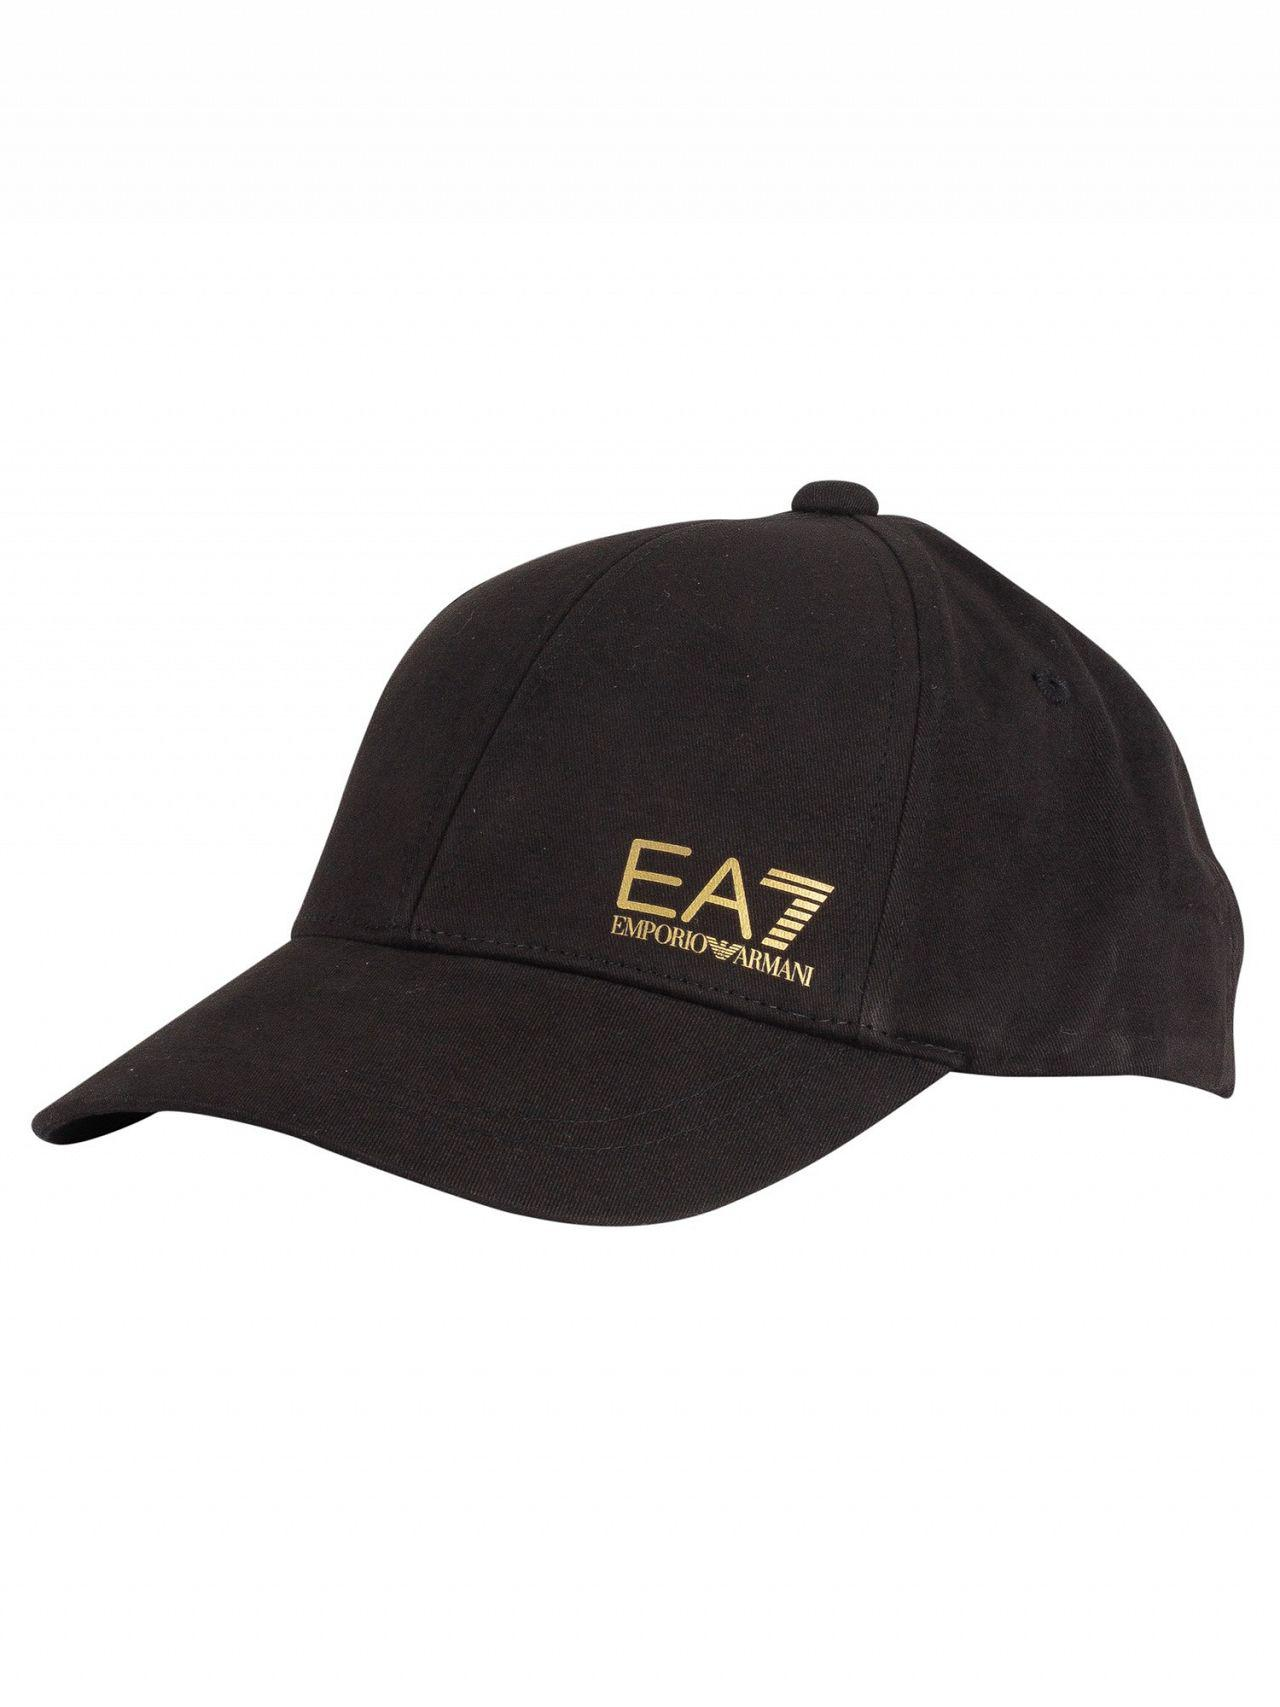 50d0c4b2bb5 Lyst - EA7 Black gold Train Core Baseball Cap in Black for Men ...